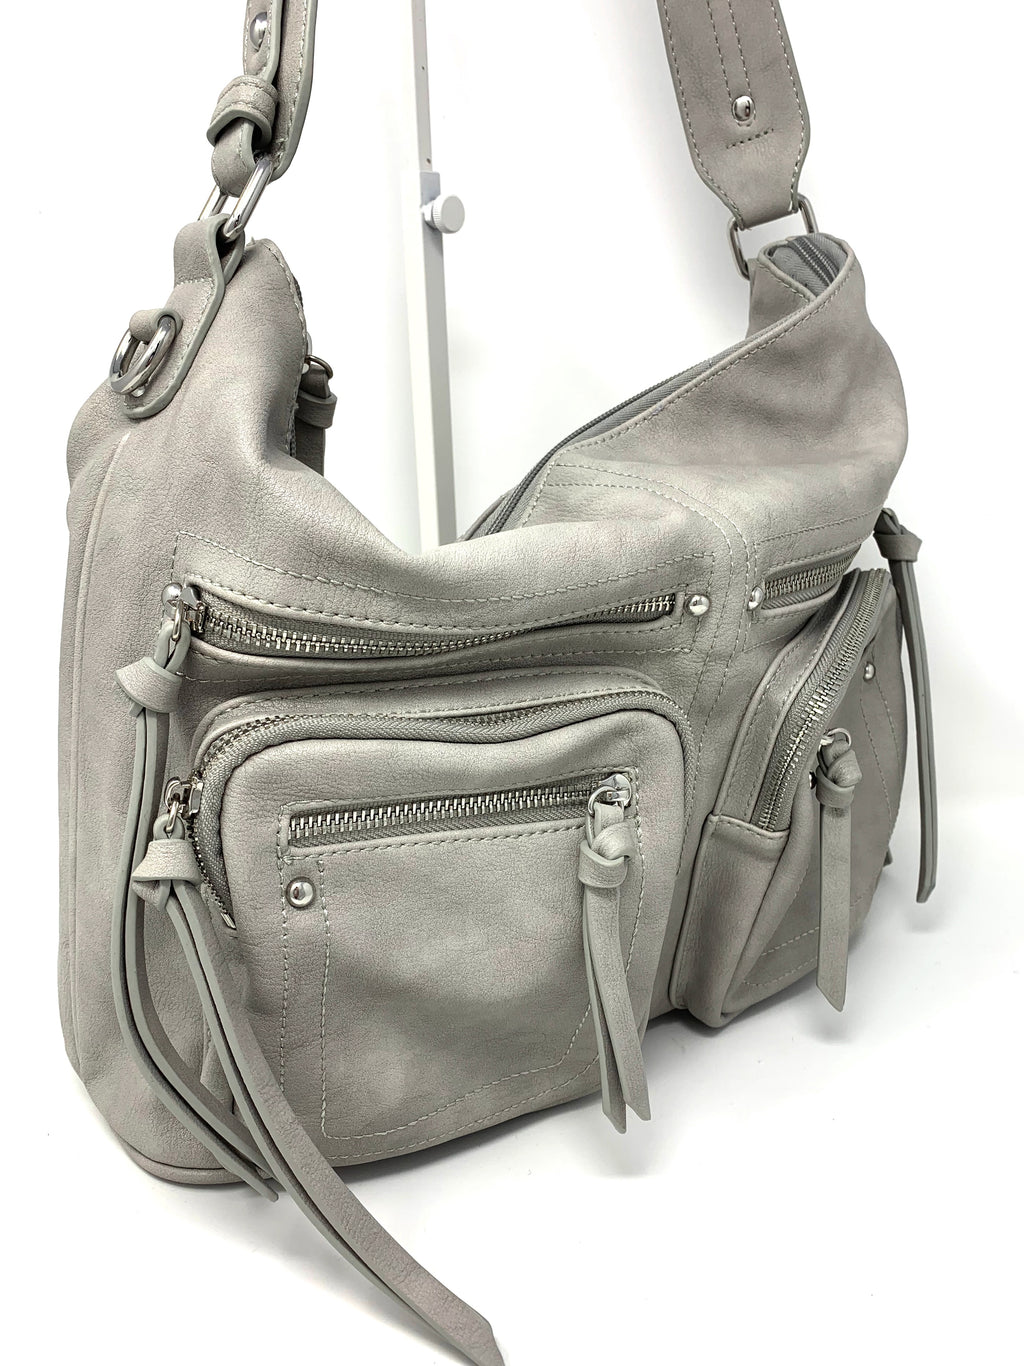 The Michelle Cargo Bag in Soft Grey